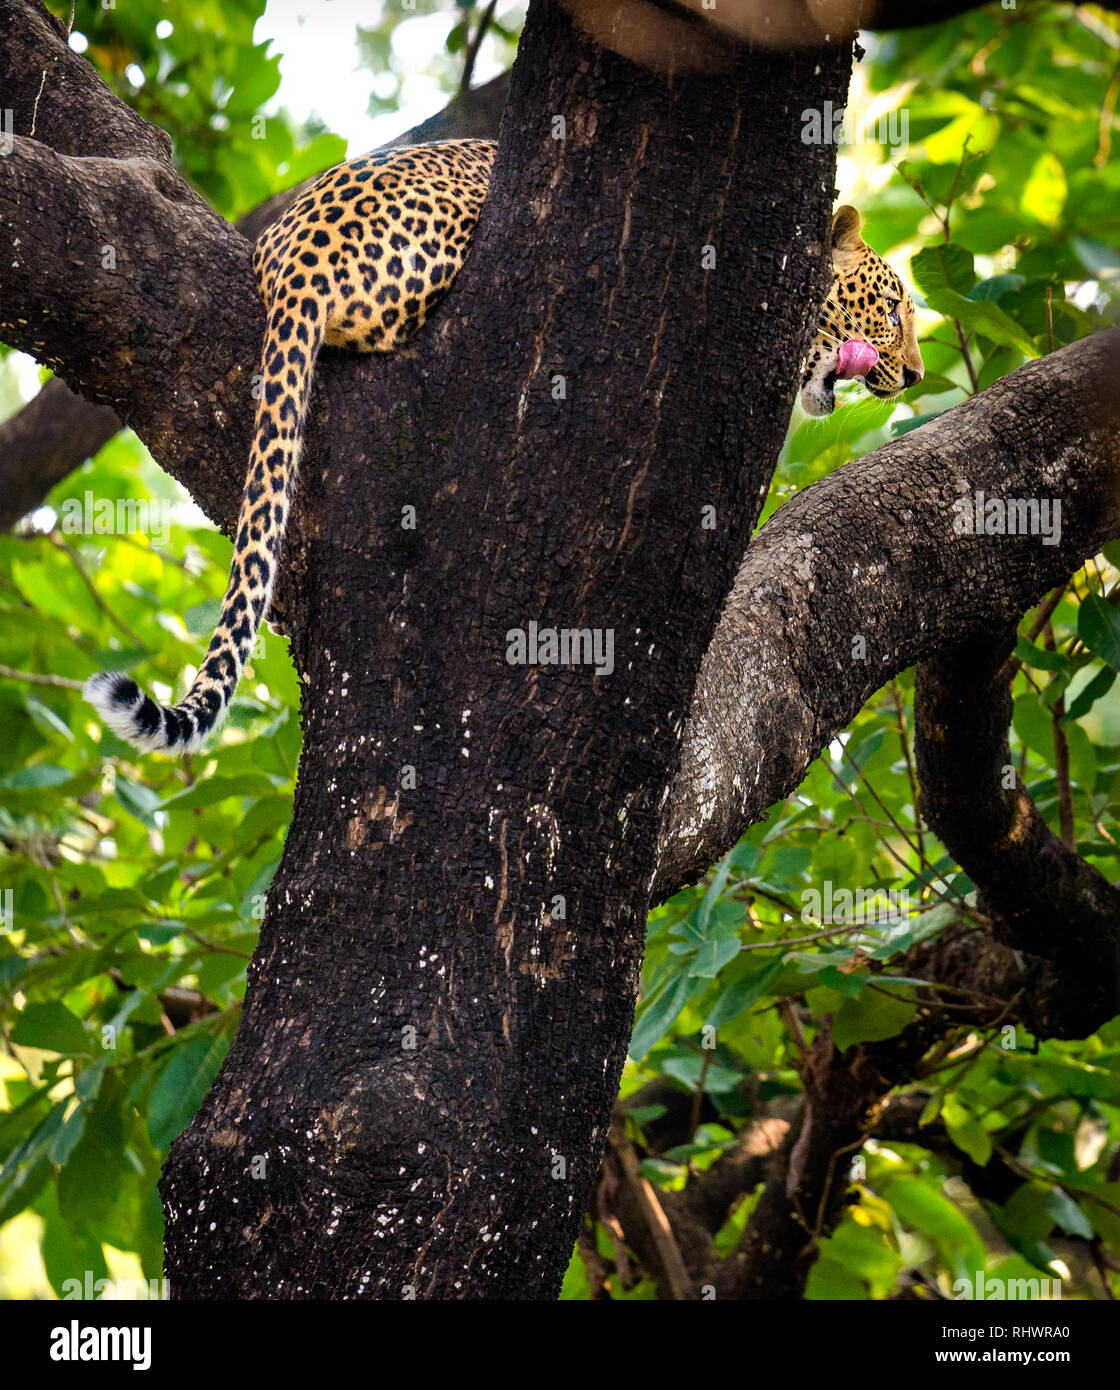 a leopard relaxing on a branch after having a meal further up in the tree Stock Photo